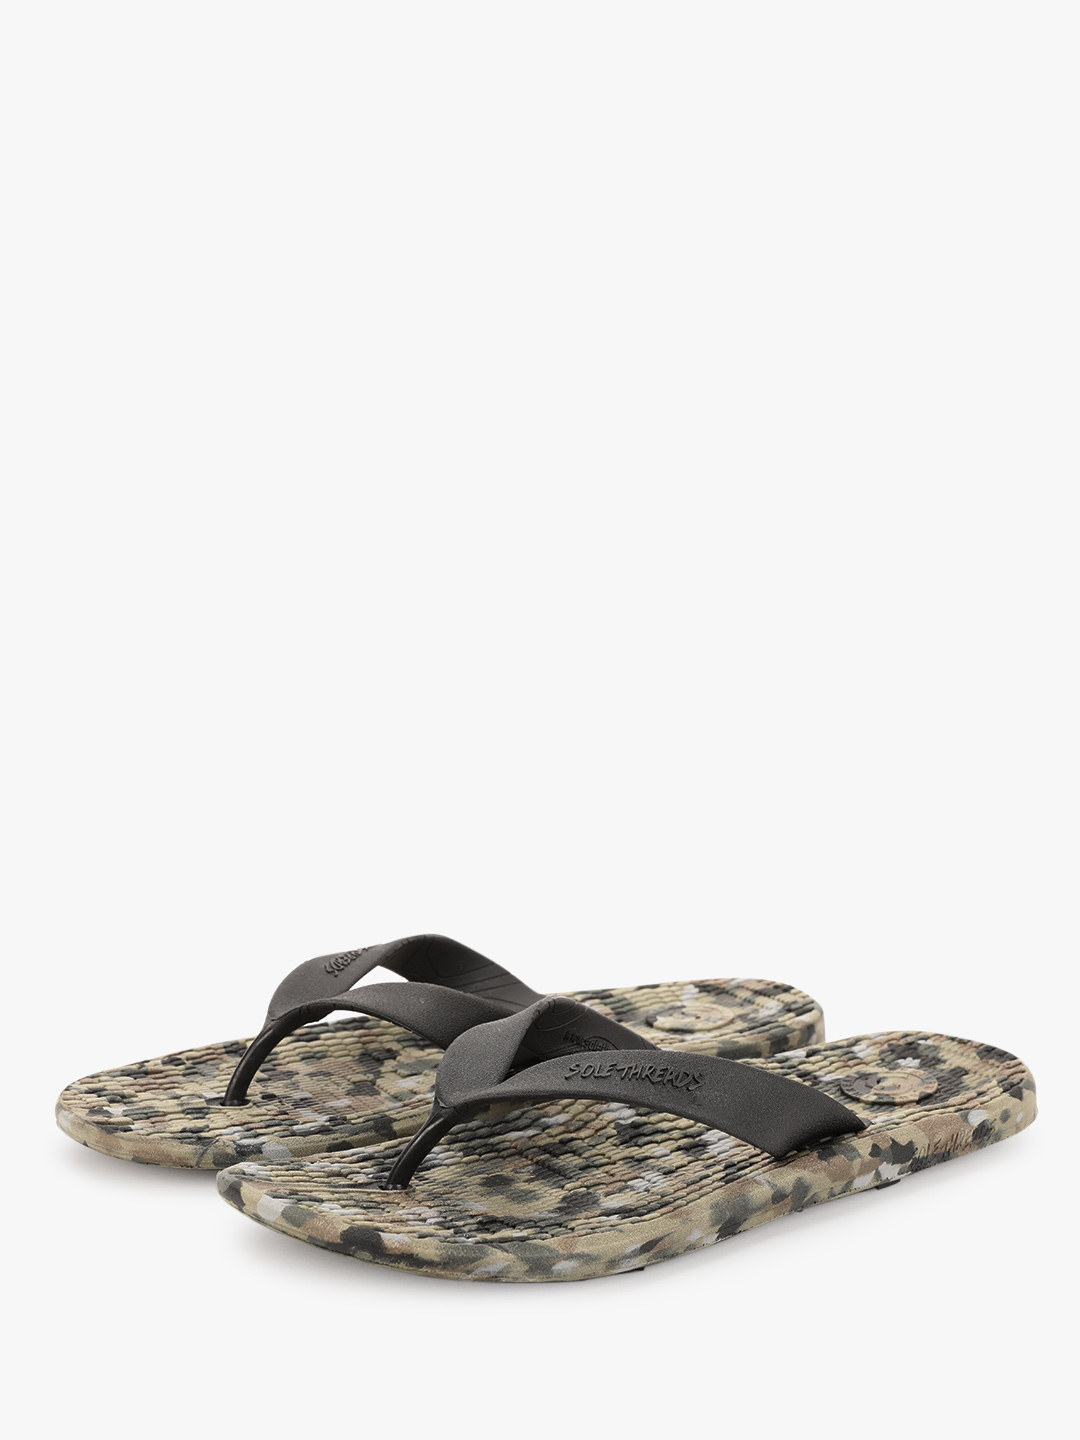 Sole Threads Multi Flip Flops With Textured Footbed 1